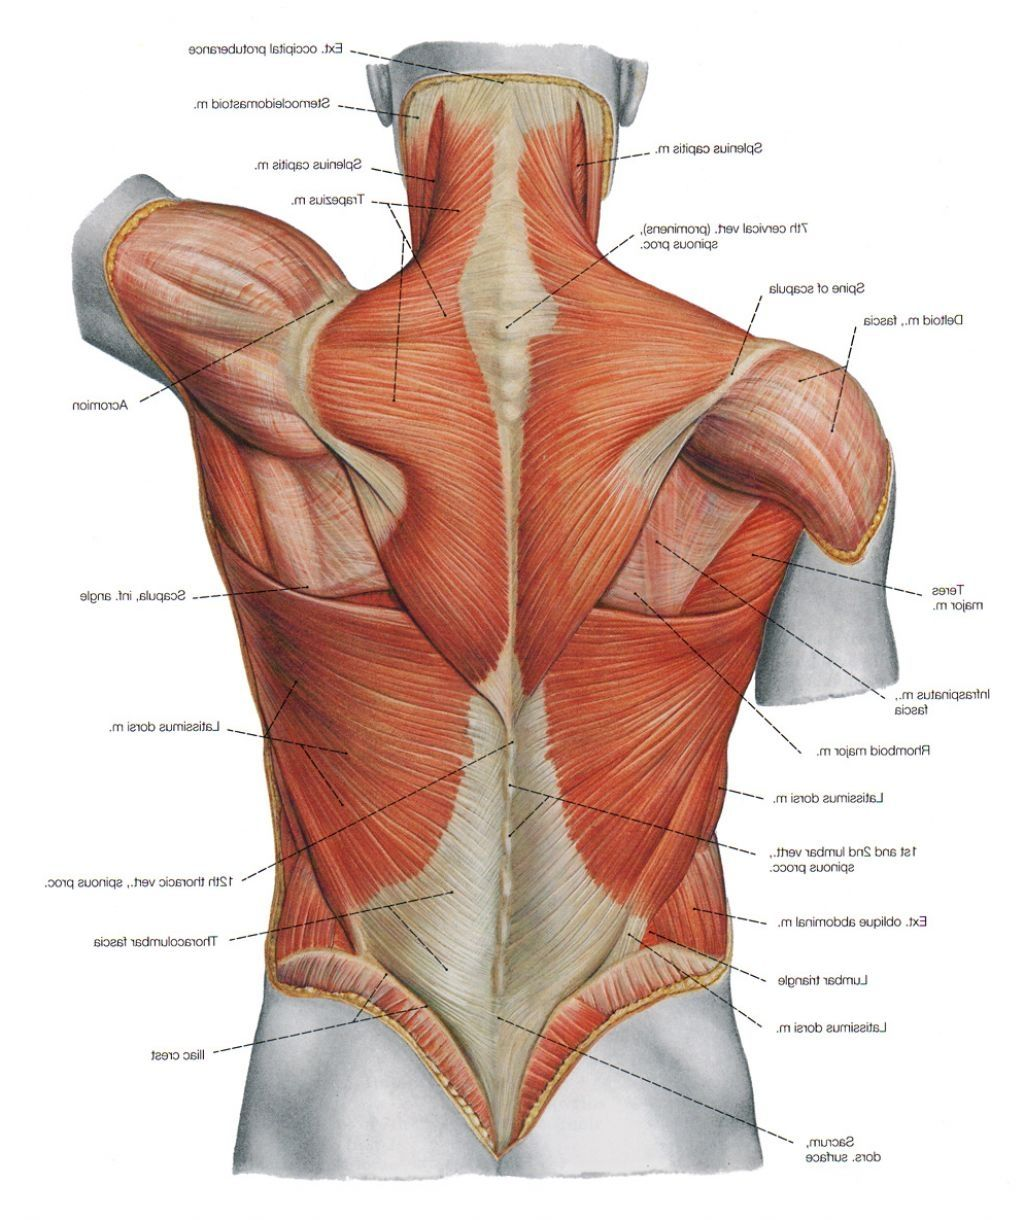 small resolution of pin by reyman panganiban on anatomy in 2019 shoulder muscle back muscles diagram pain back diagram muscles